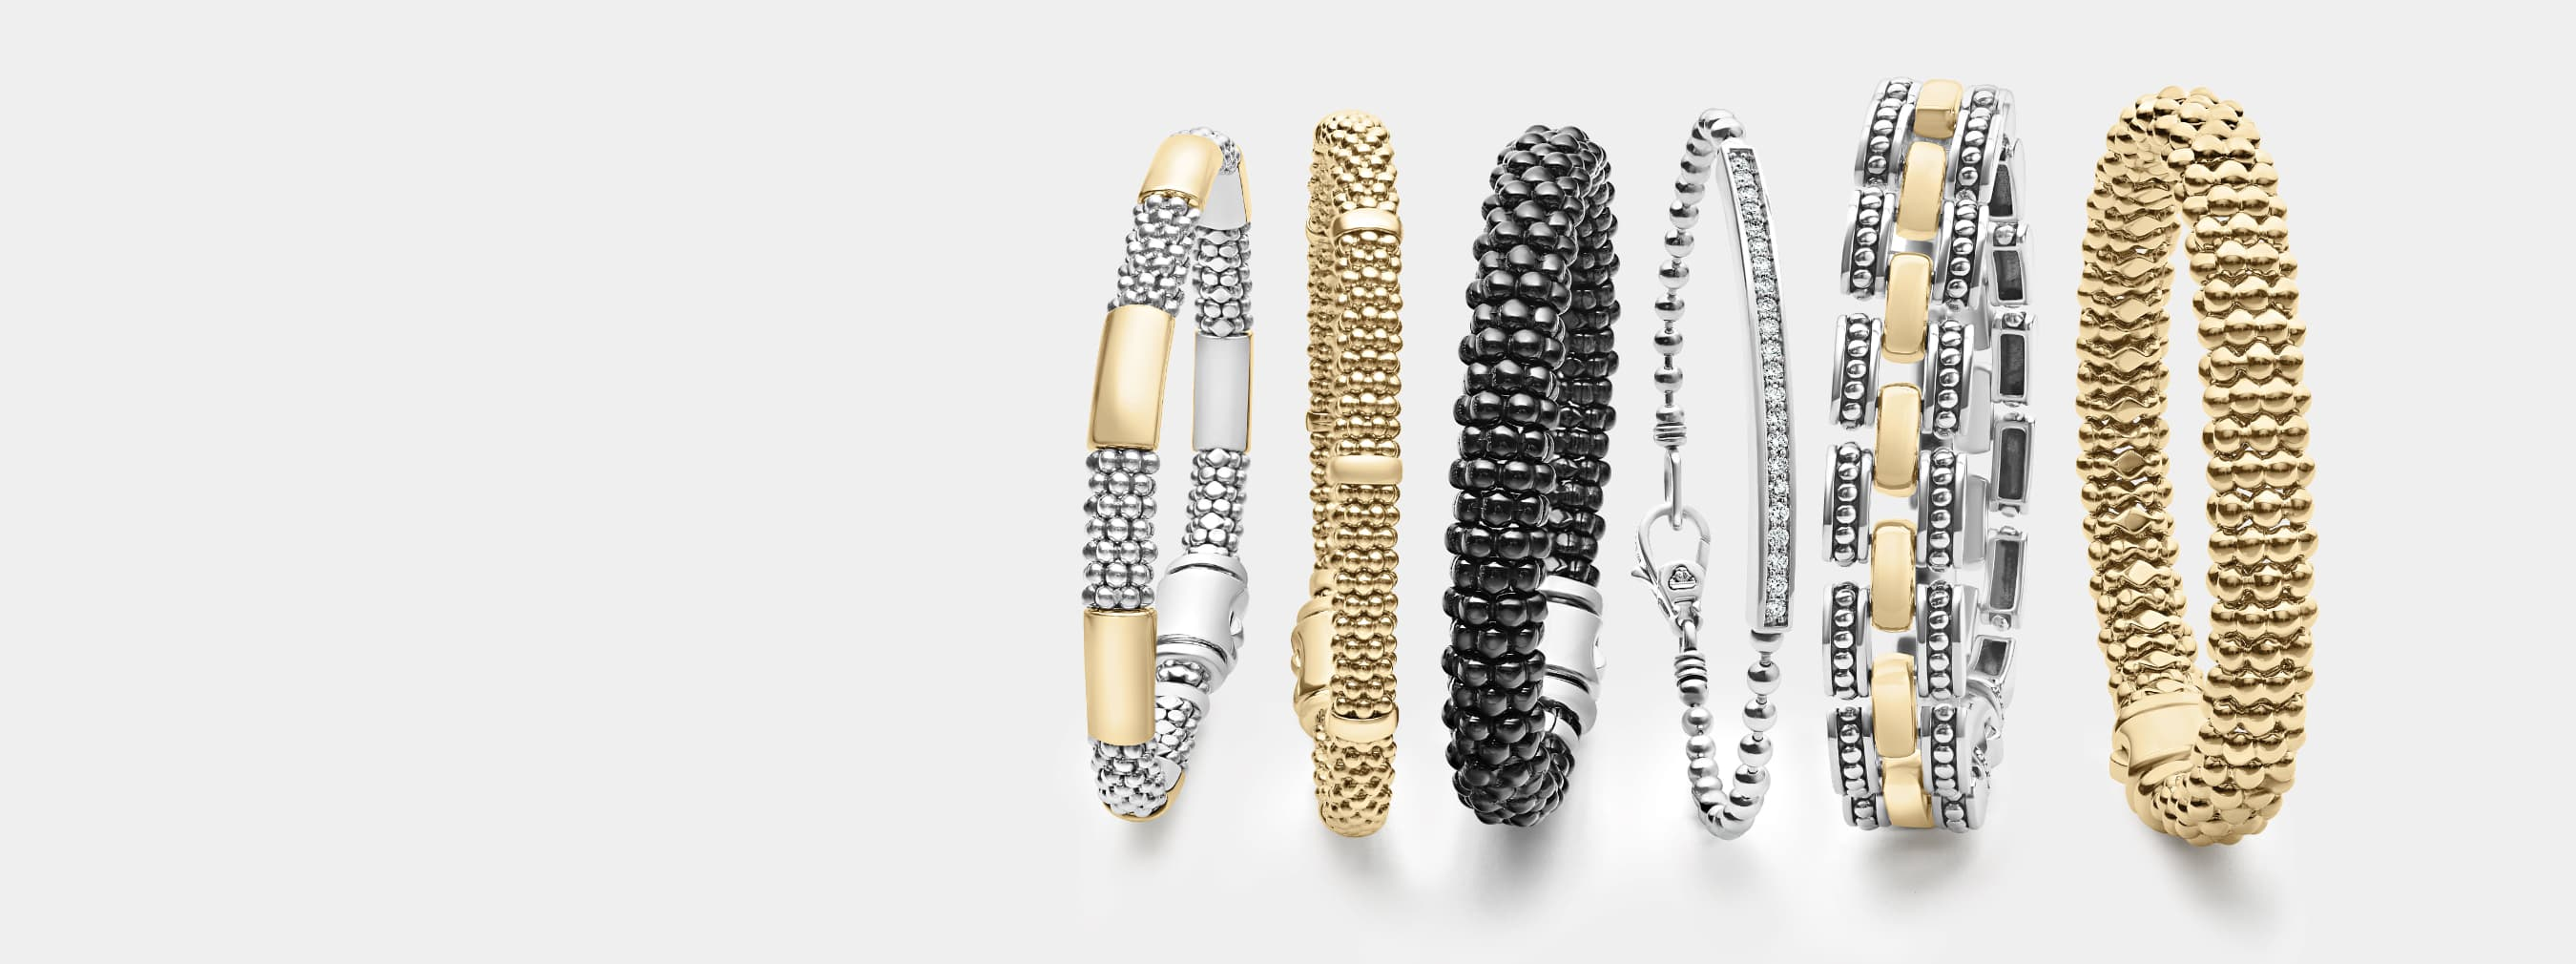 Necklaces, bracelets and rings featuring Caviar beading in fold, silver and blue or white ceramic style.